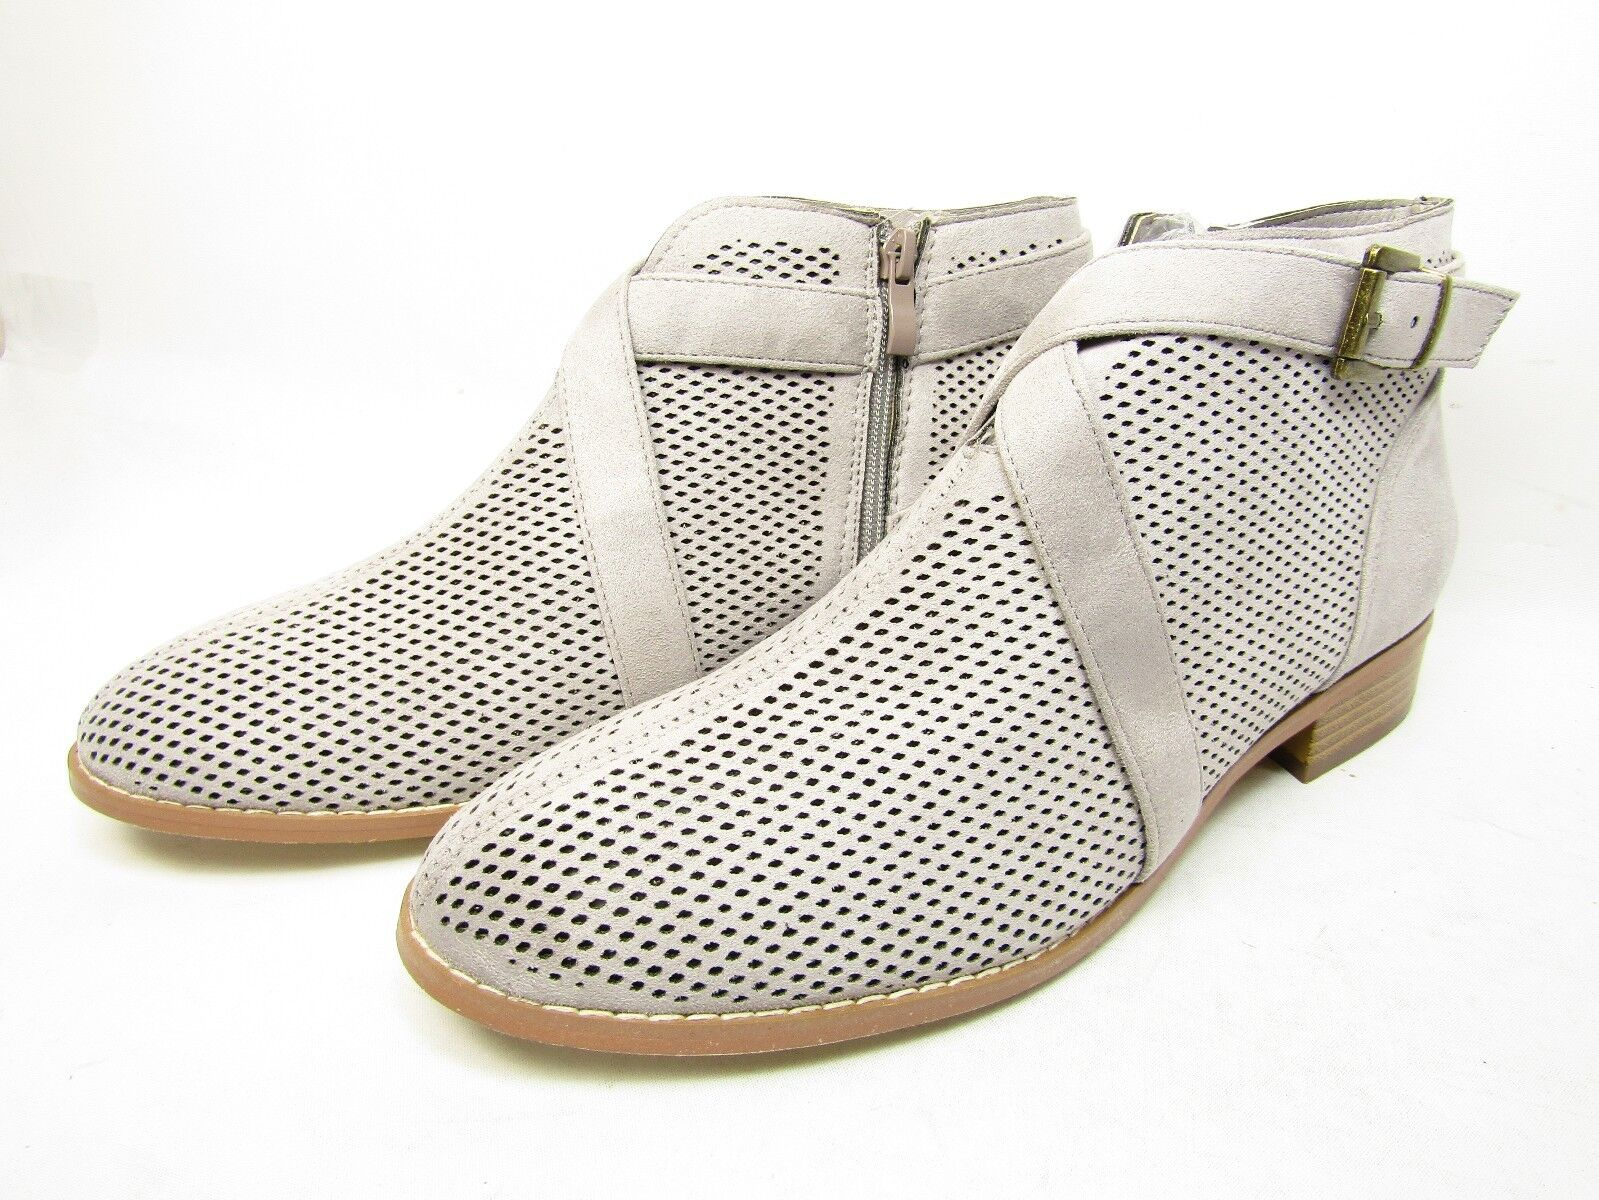 Journee Collection Reggi   Round Toe Synthetic  Bootie Grey Size 12